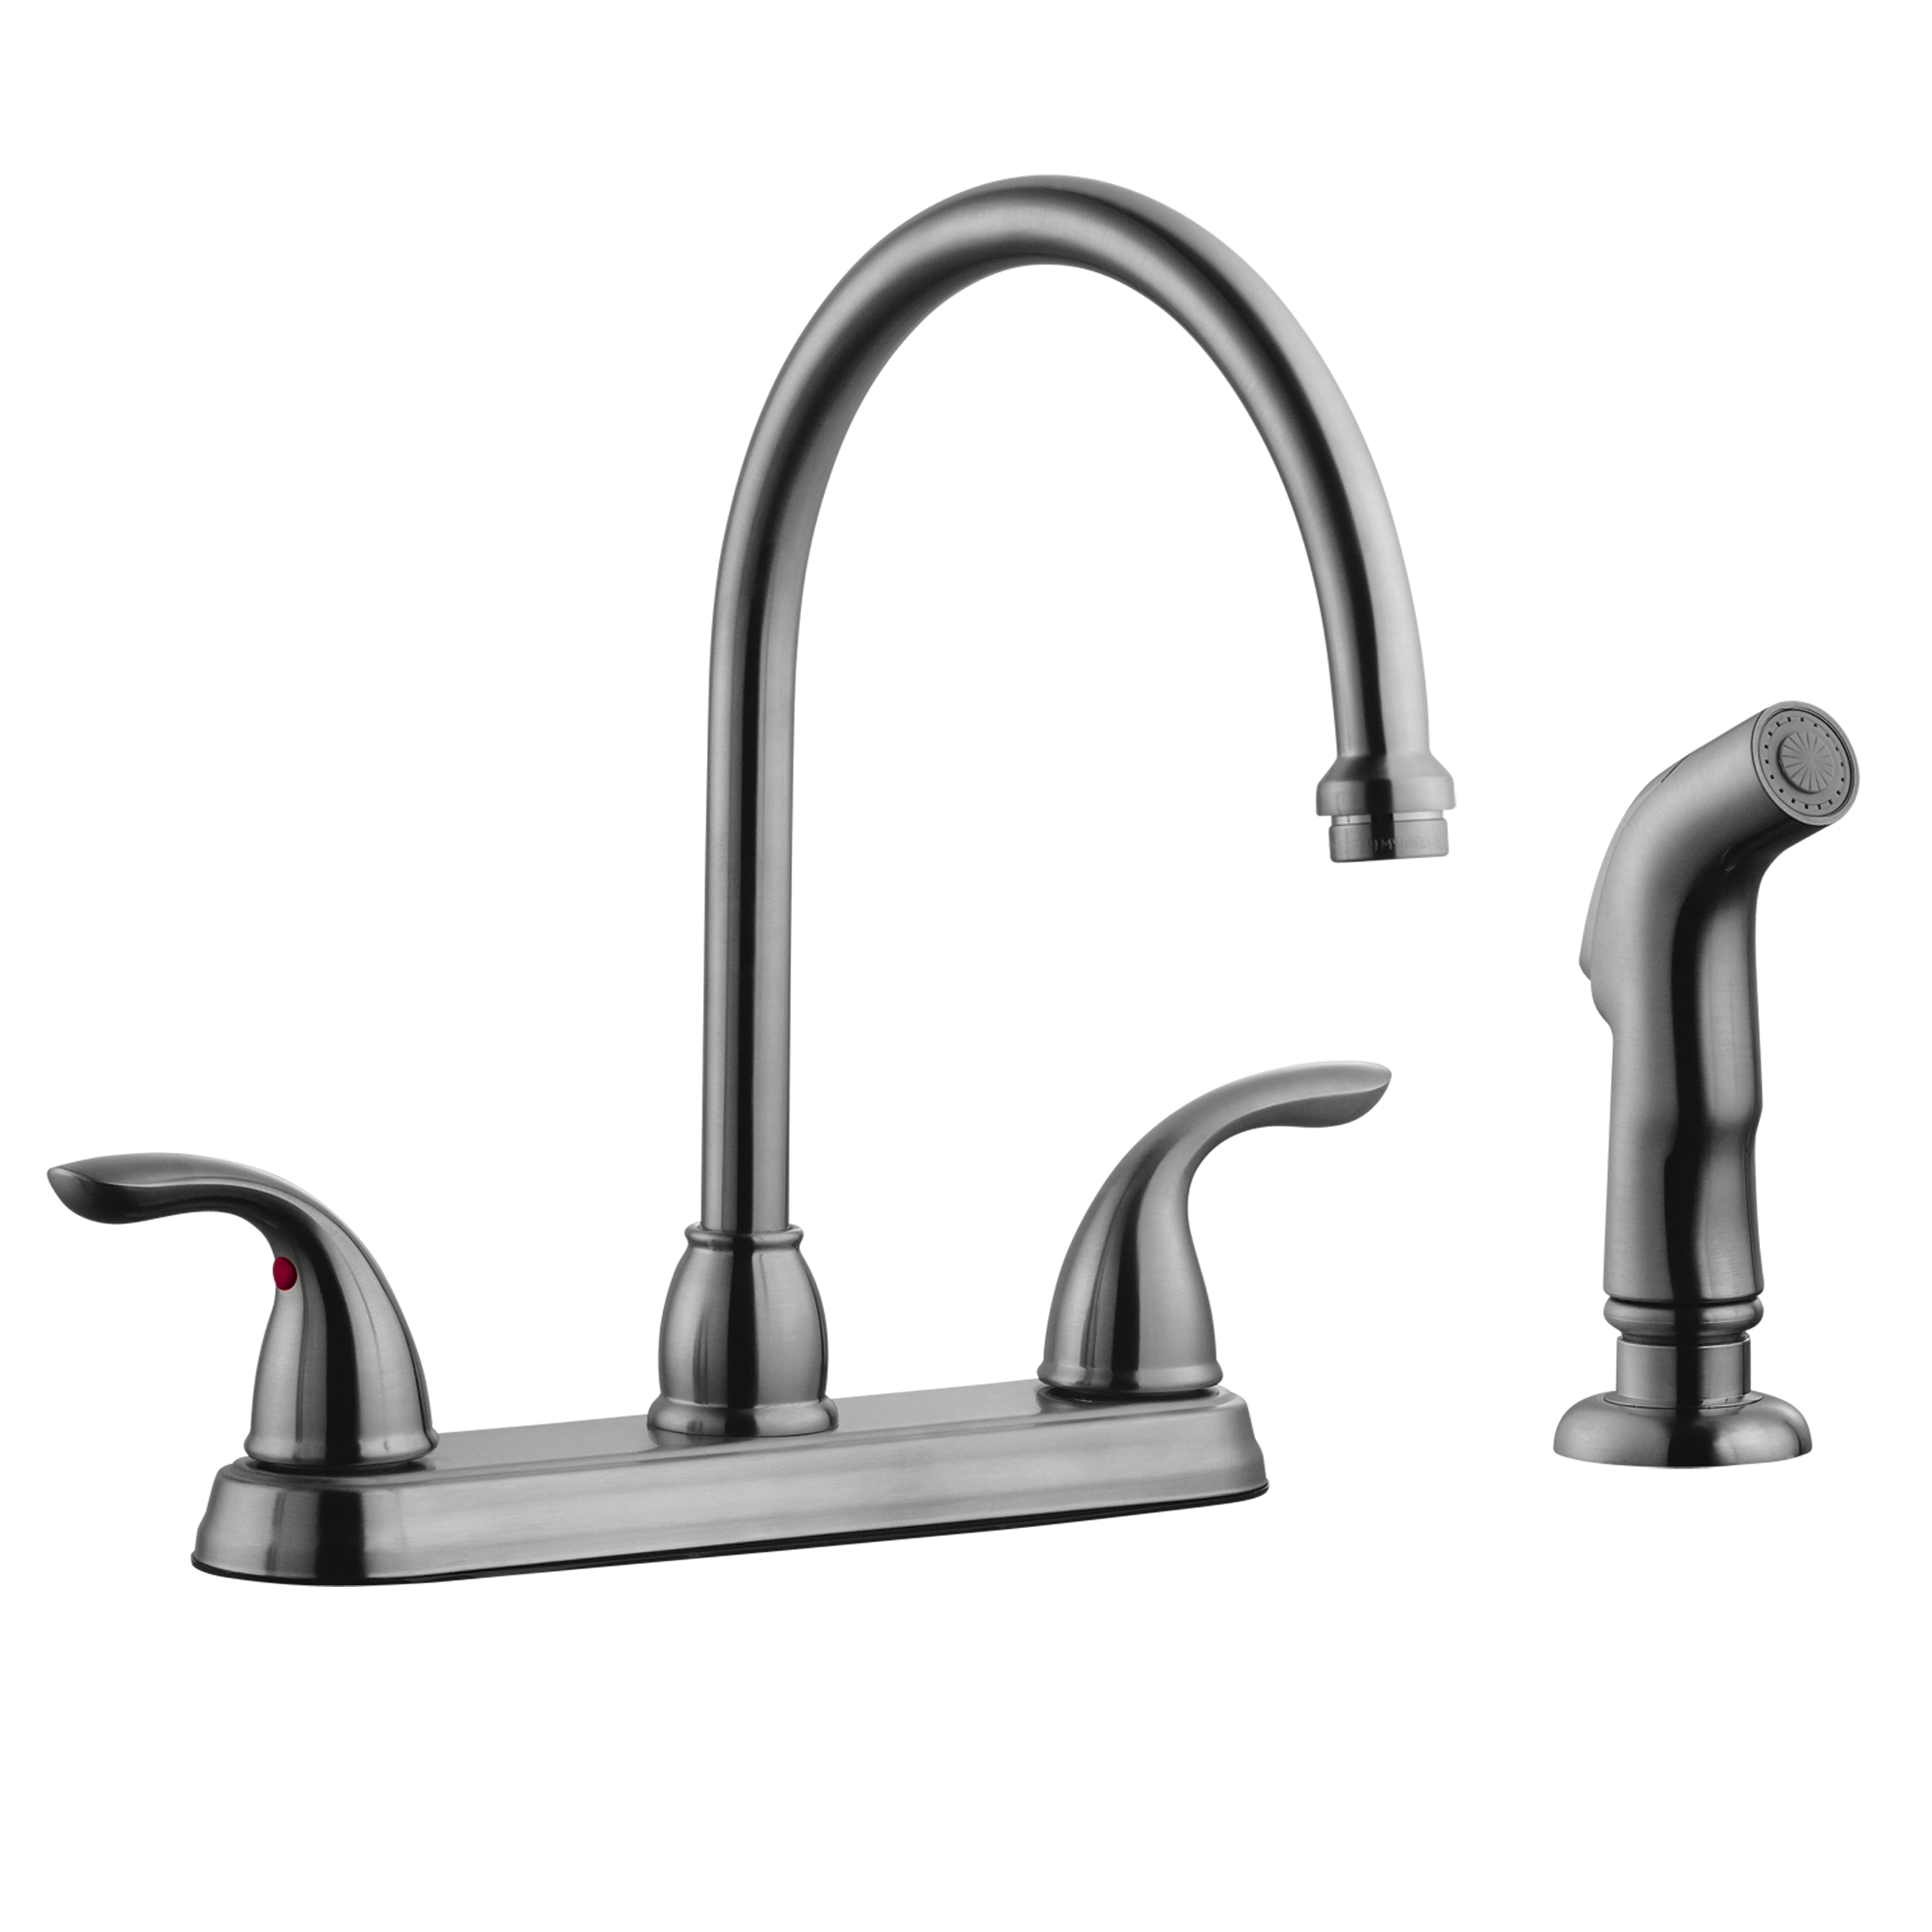 high arch kitchen faucet high arch kitchen faucet with spring high arch kitchen faucet with sprayer house design catalog 1305